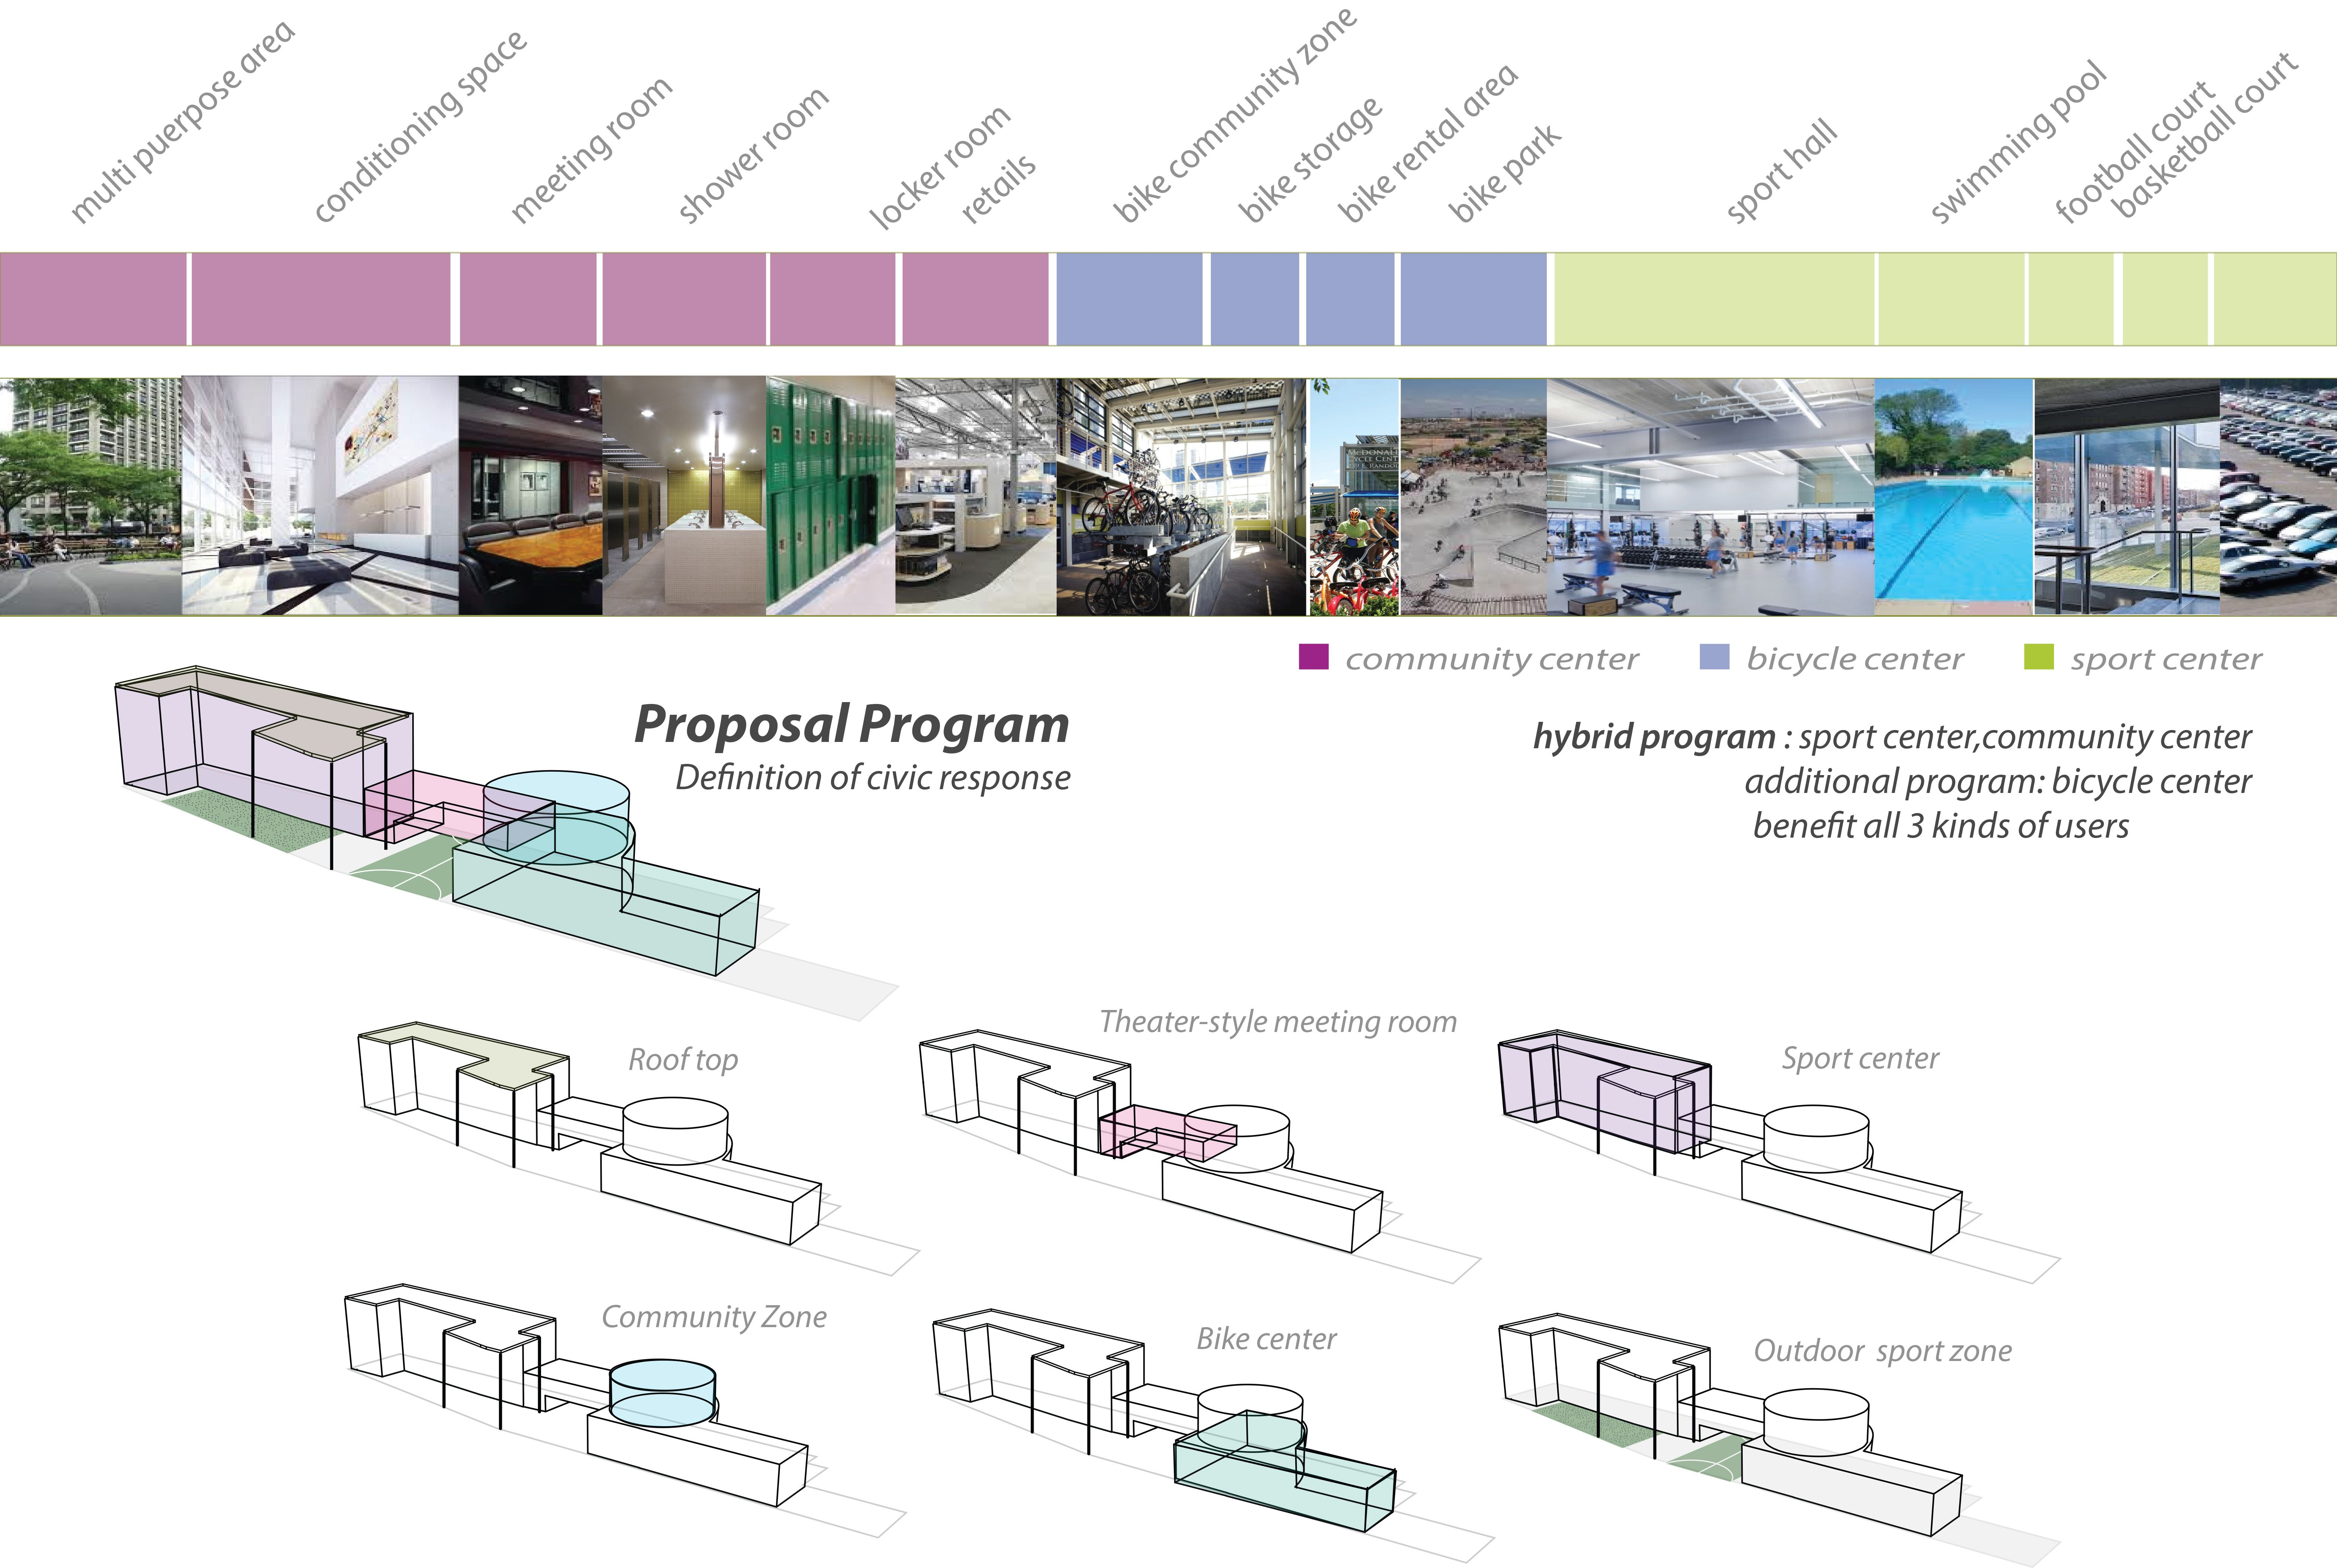 Diagram Shows Possibilities On Program Proposal Within The Site Interconnection Of Recreation Bicycle And Sport Zone Recreation Bike Parking Center Sport